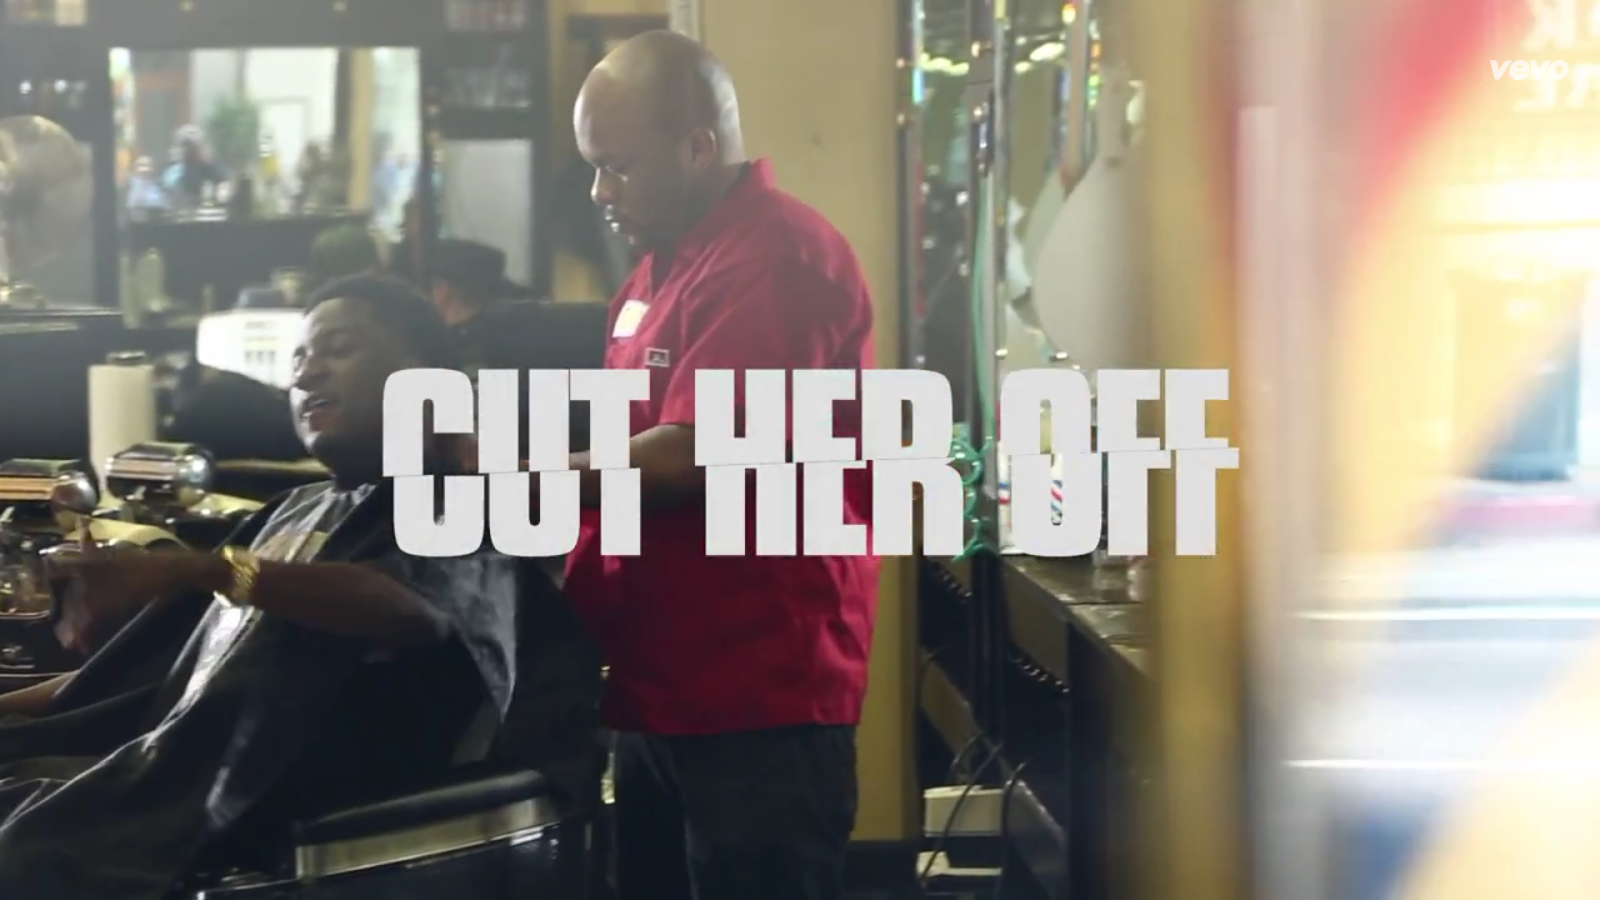 K Camp Cut Her Off Video K Camp Rapper Quotes. ...